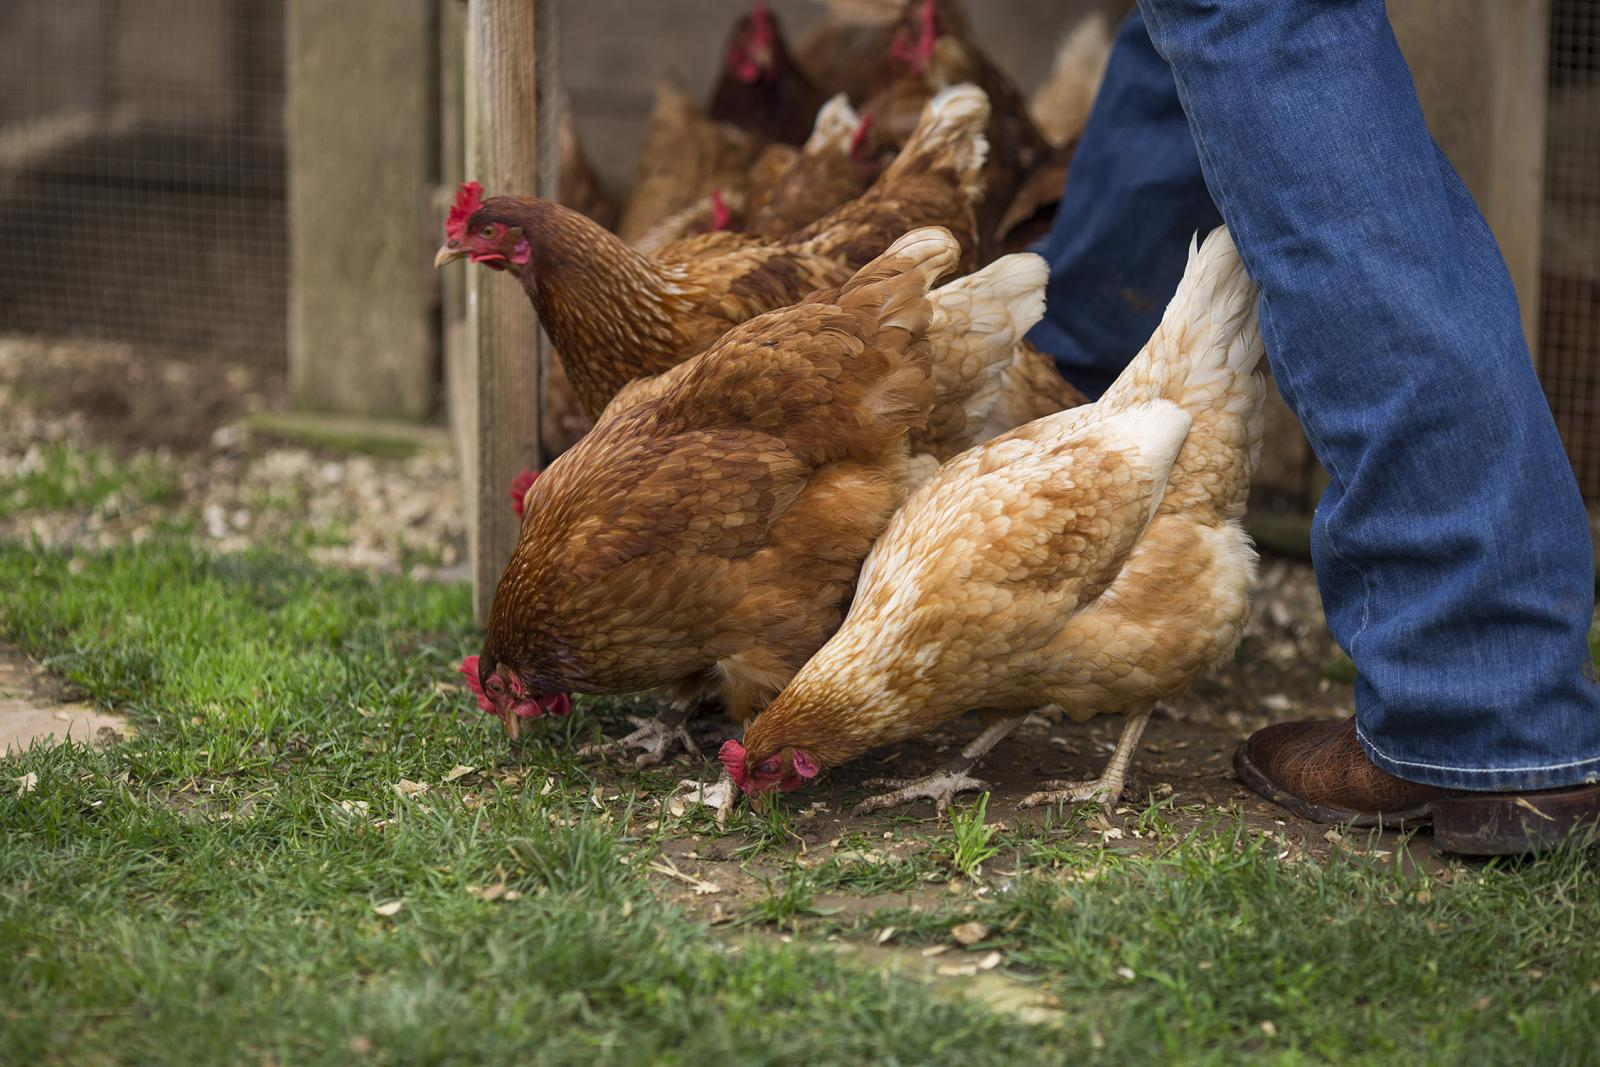 red chickens peck at the ground as a someone walks by wearing jeans and boots